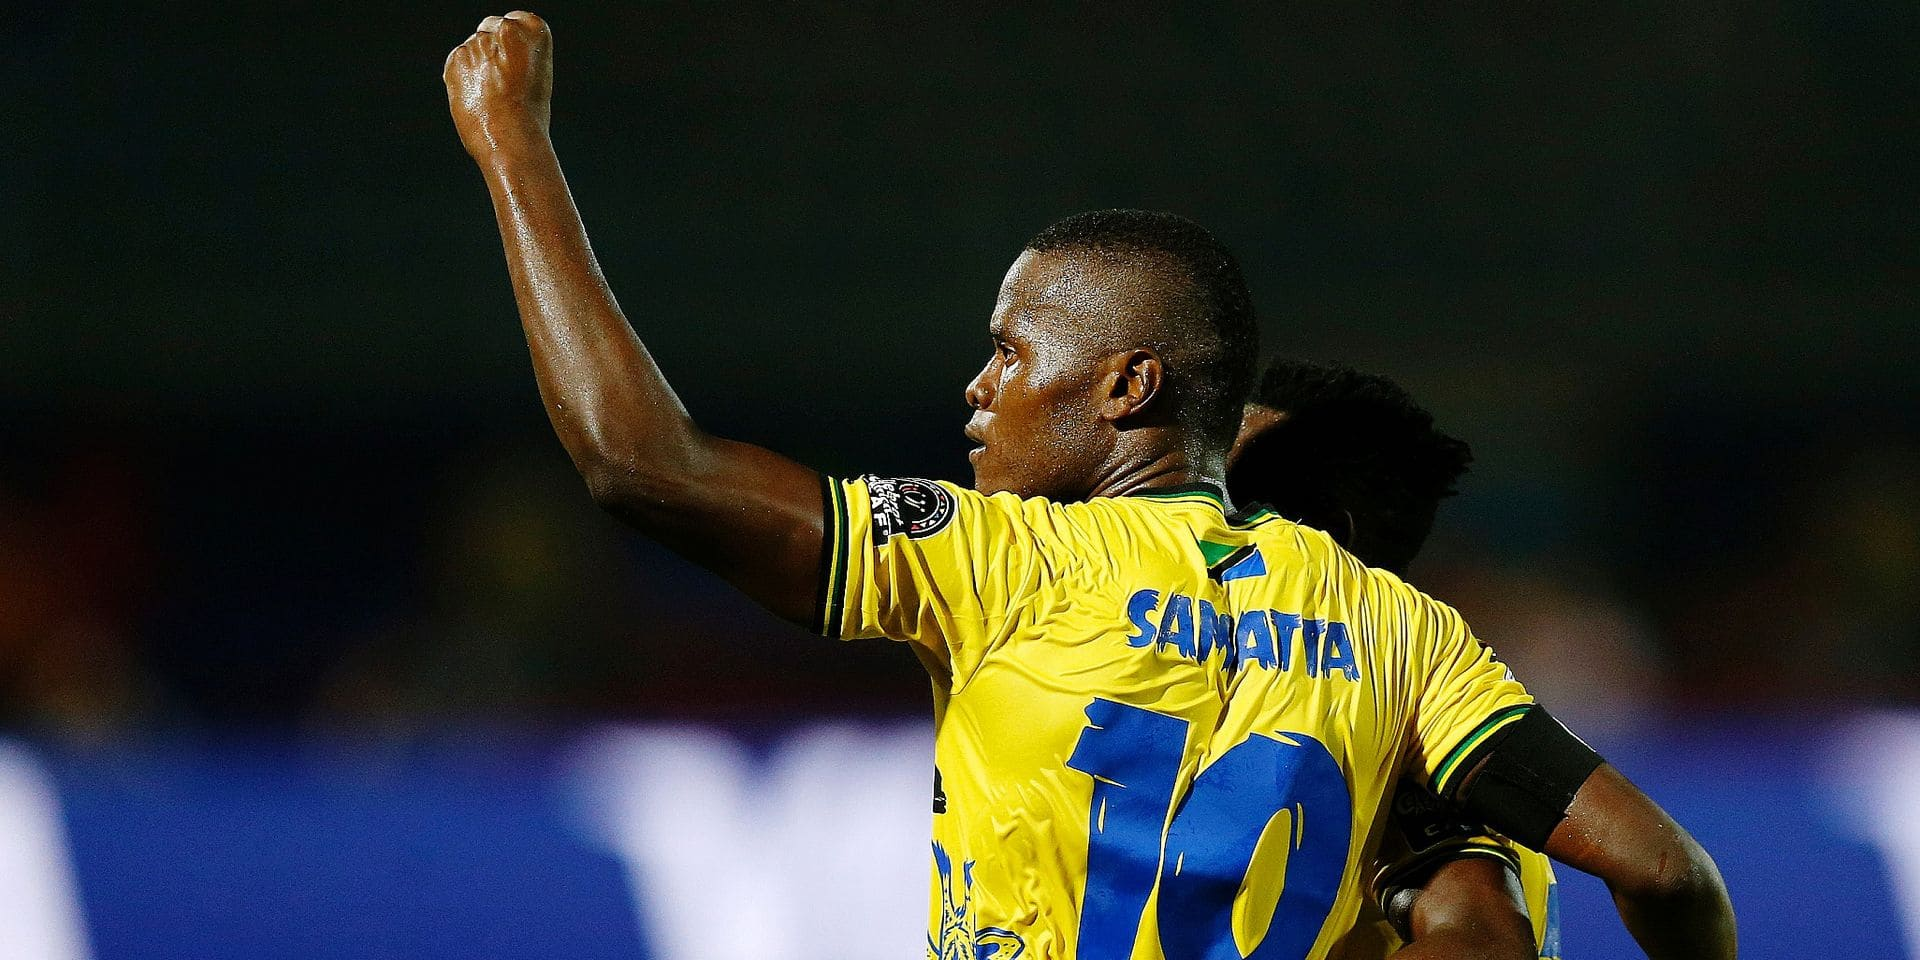 Tanzania's Mbwana Samatta celebrates after he scored during the African Cup of Nations group C soccer match between Kenya and Tanzania at 30 June Stadium in Cairo, Egypt, Thursday, June 27, 2019. (AP Photo/Ariel Schalit)